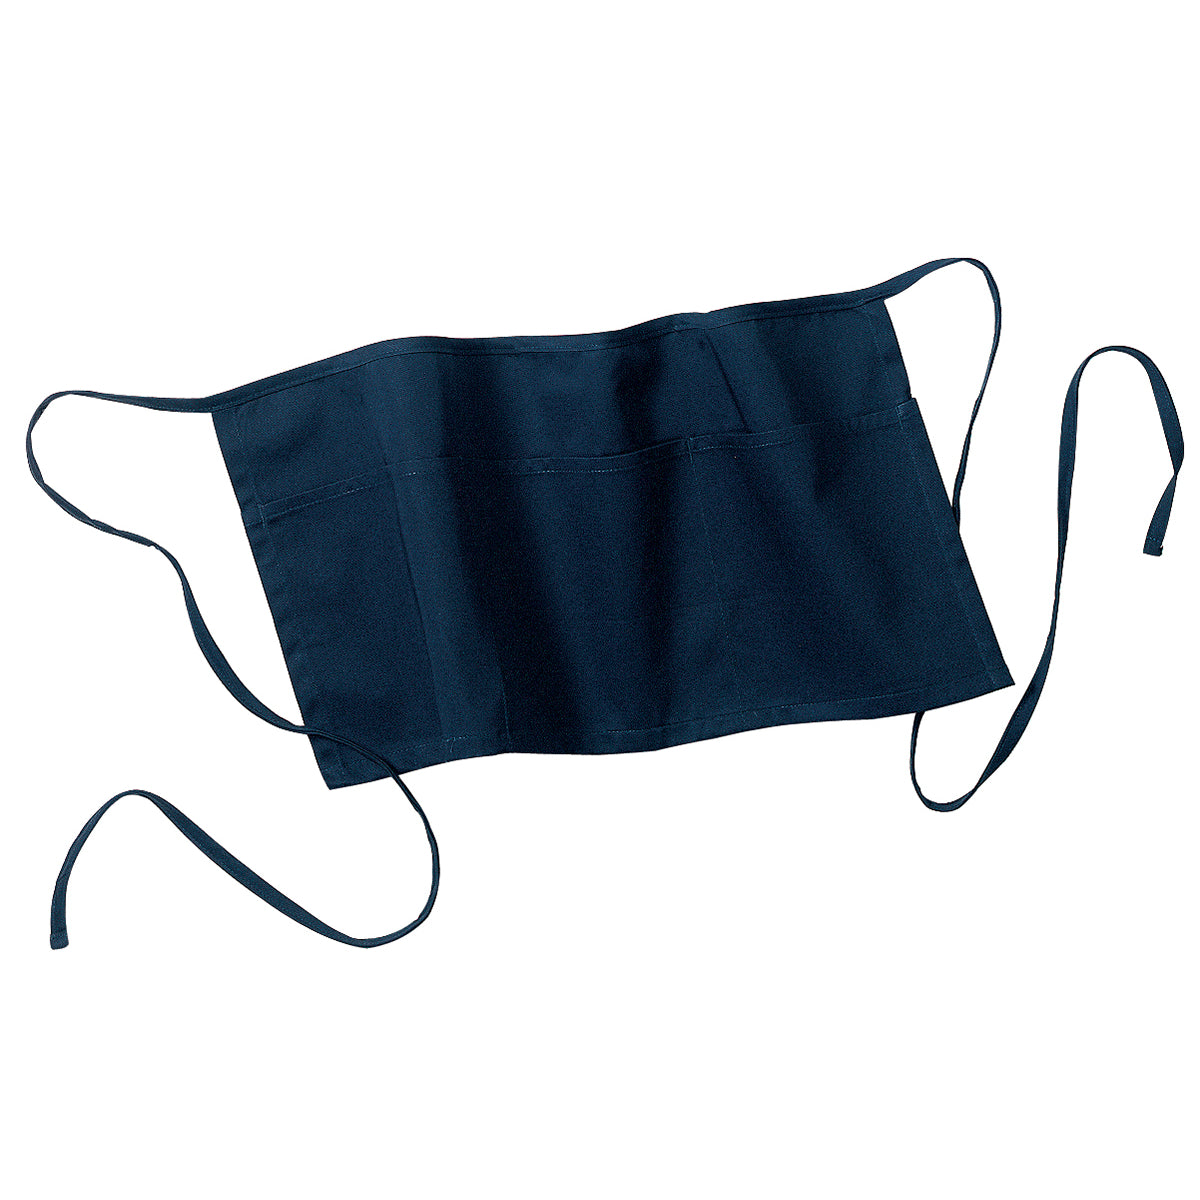 Waist Apron with Pockets Navy